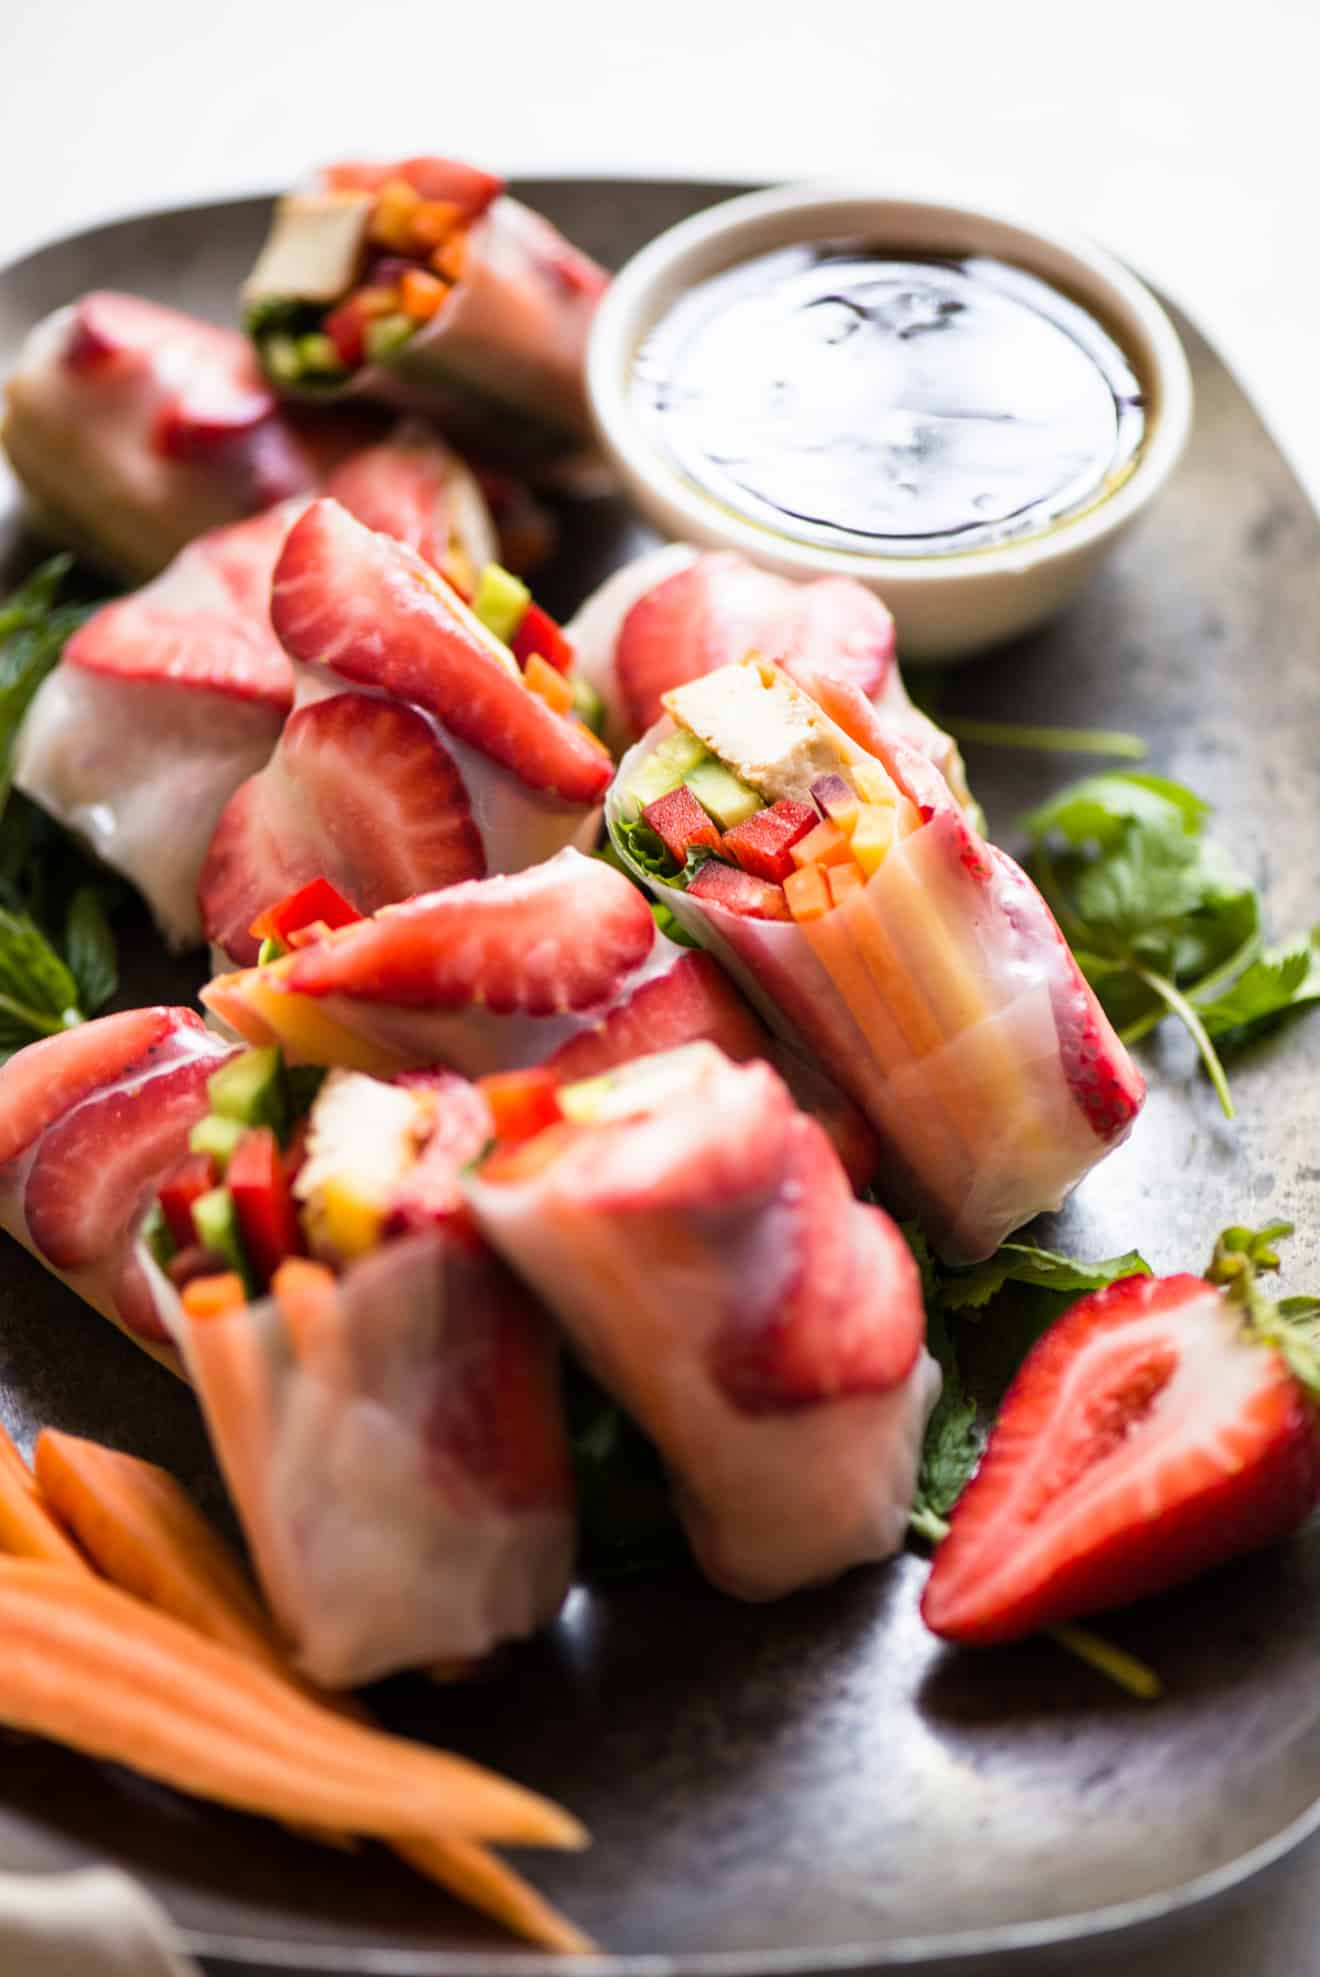 VEGAN Teriyaki Tofu Spring Rolls - simple, fresh spring rolls filled with vegetables, tofu and strawberries! Perfect party appetizer!